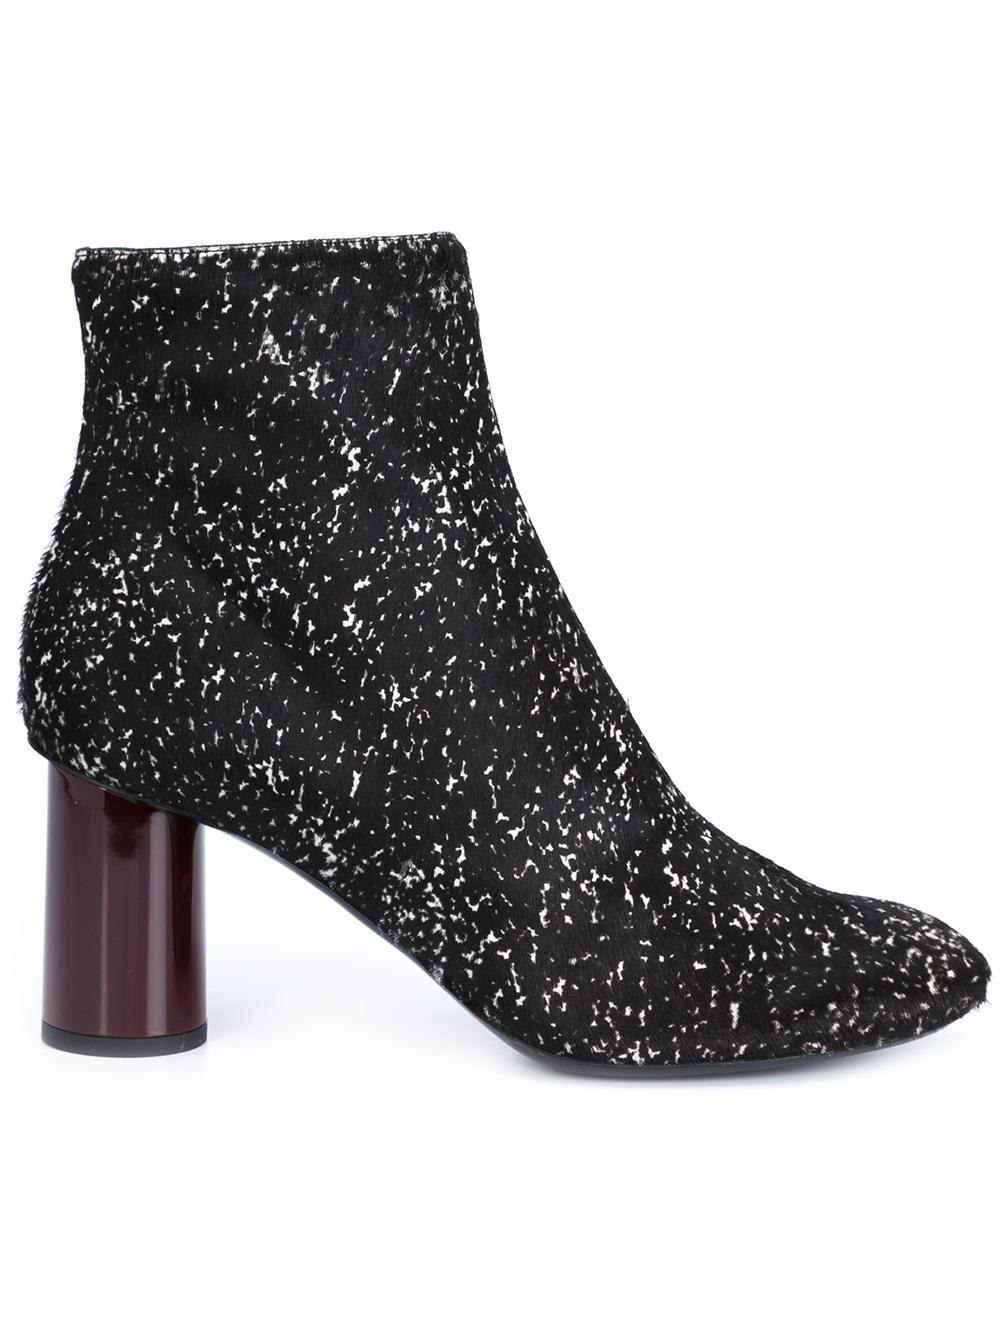 Proenza Schouler Woven Matte And Patent-leather Ankle Boots in Black